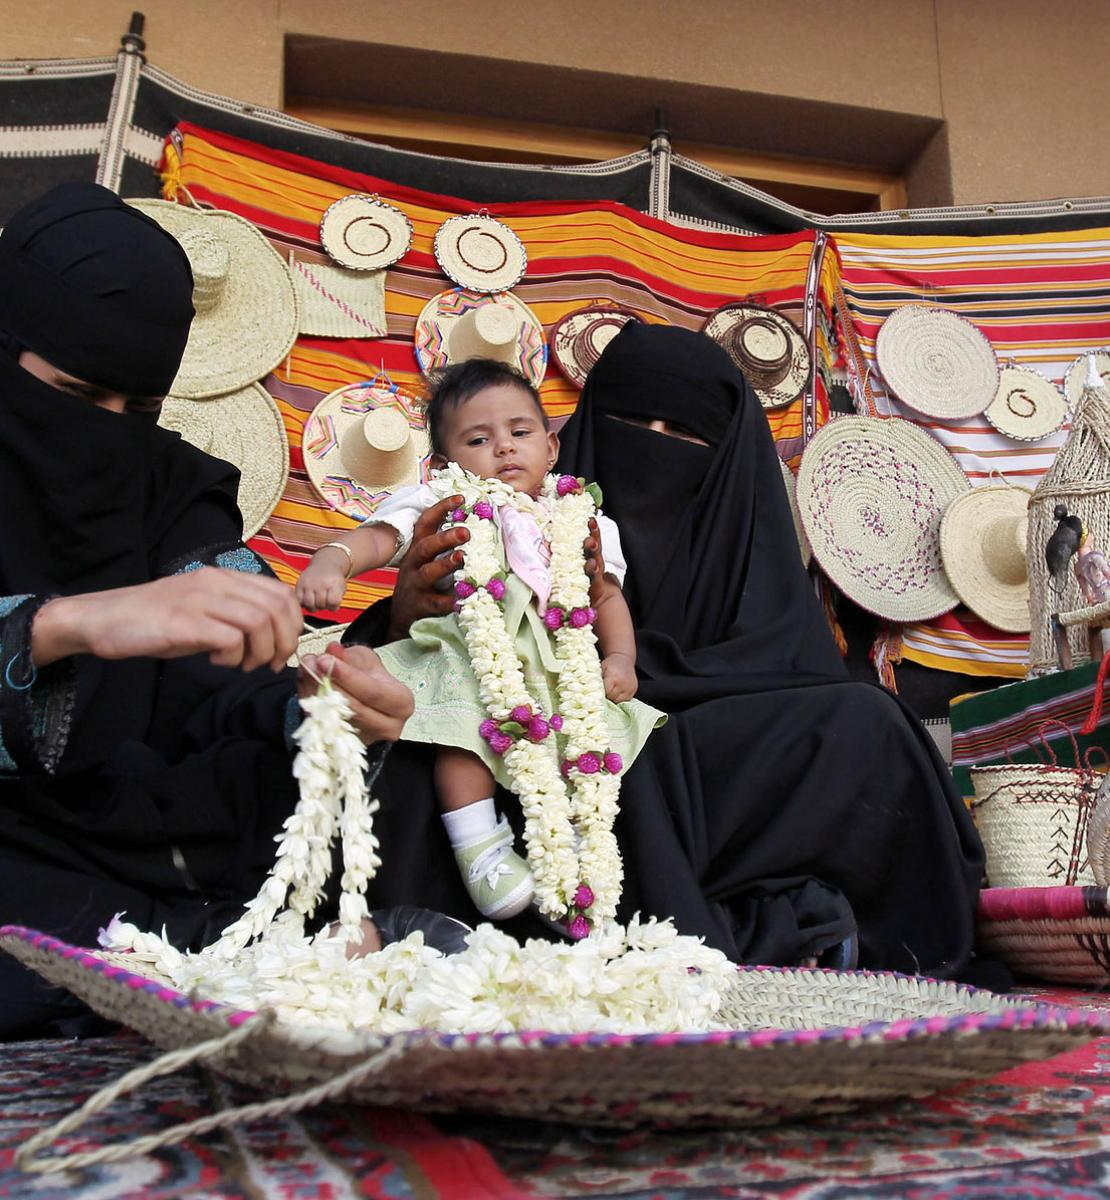 A Saudi woman sits on a rug and threads fresh flowers to sell in a souk as another woman sitting beside her holds up a baby.